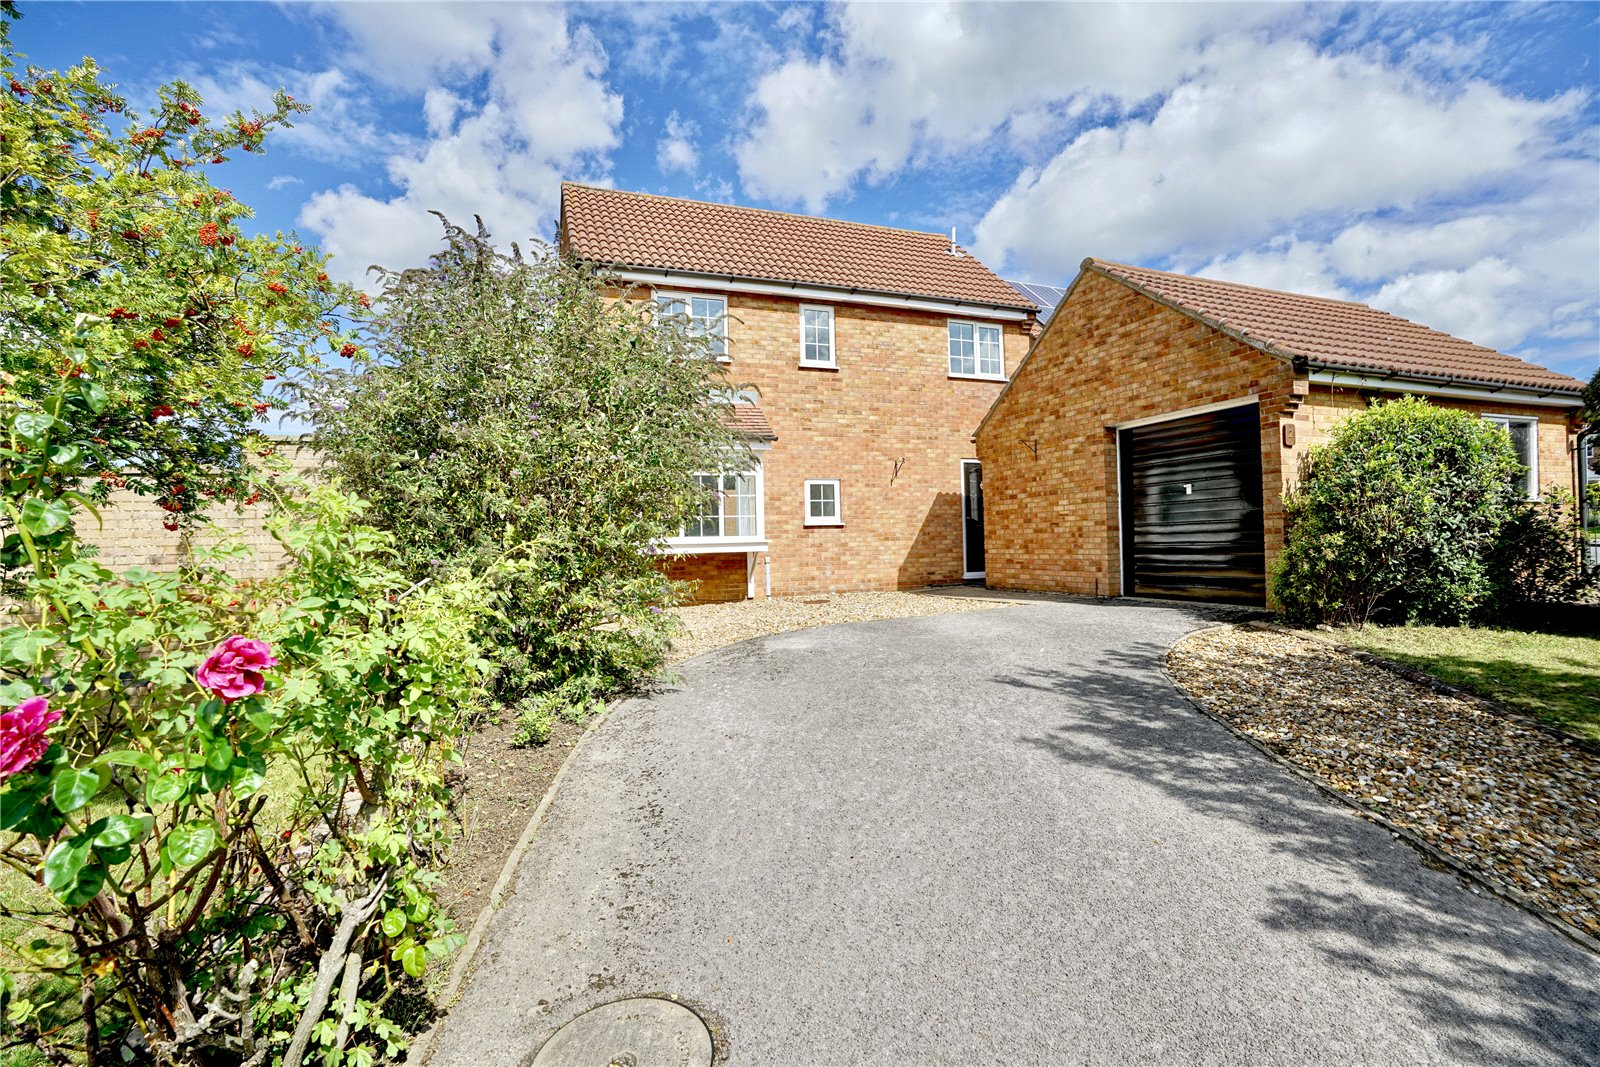 4 bed house for sale in Eaton Socon, Muntjac Close, PE19 8QH, PE19